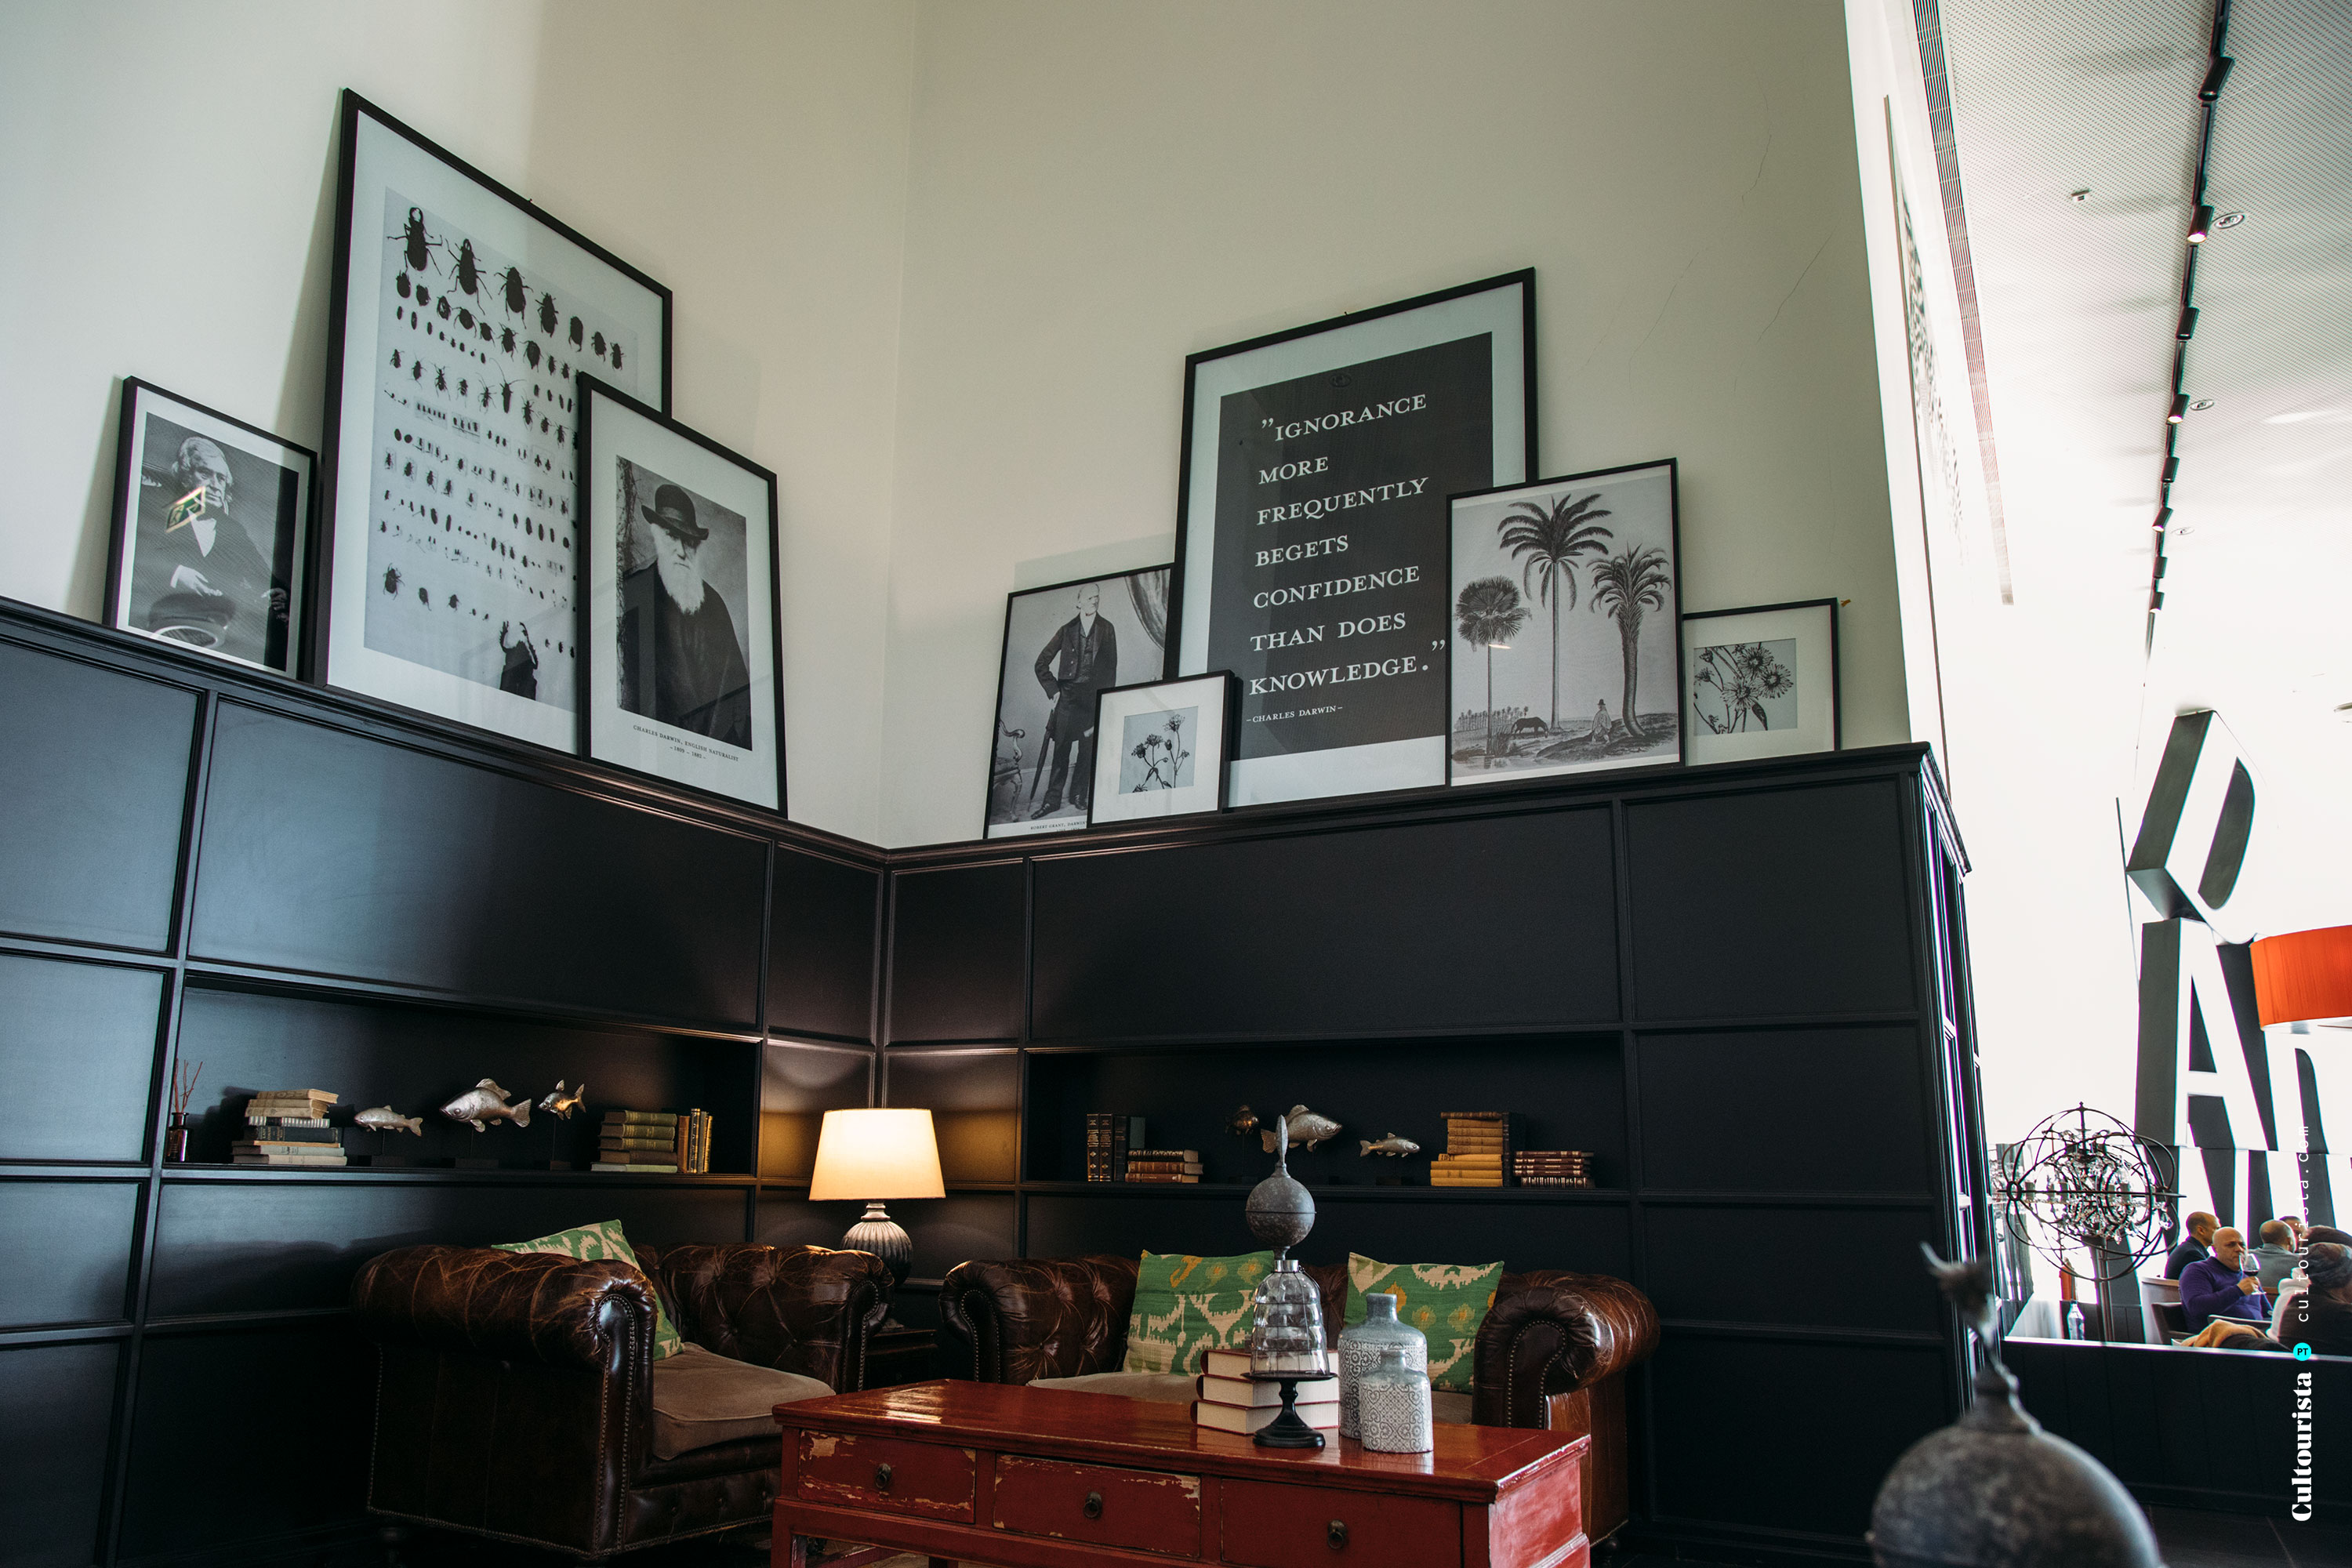 Corner with posters and other details of interior design at the restaurant Darwin's Cafe in Belém Lisbon